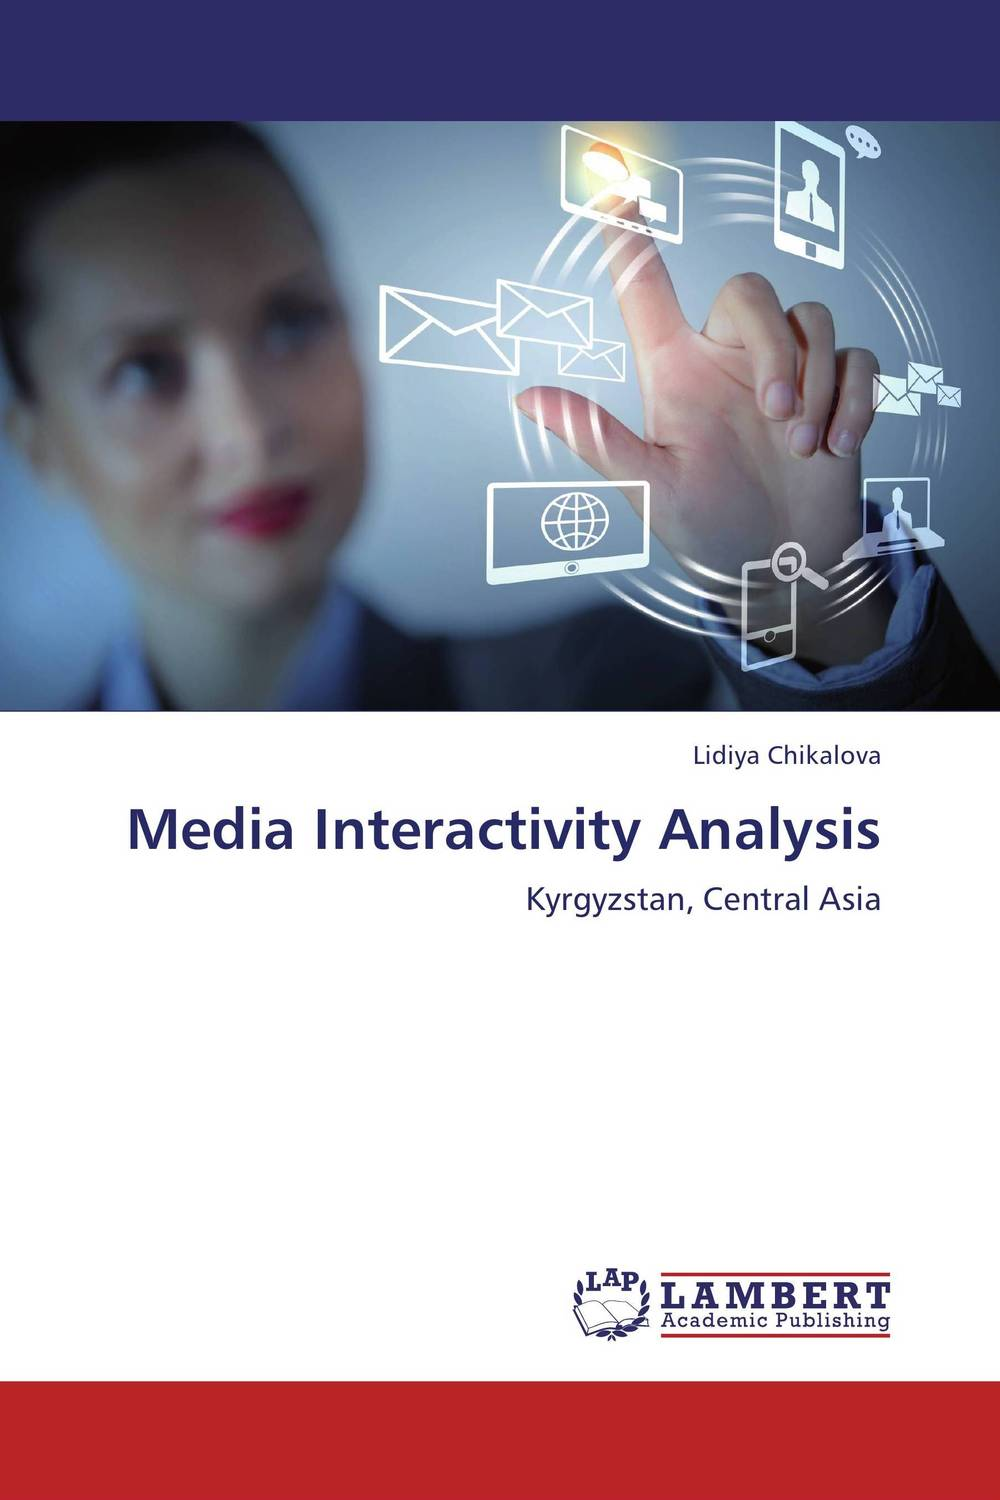 Media Interactivity Analysis